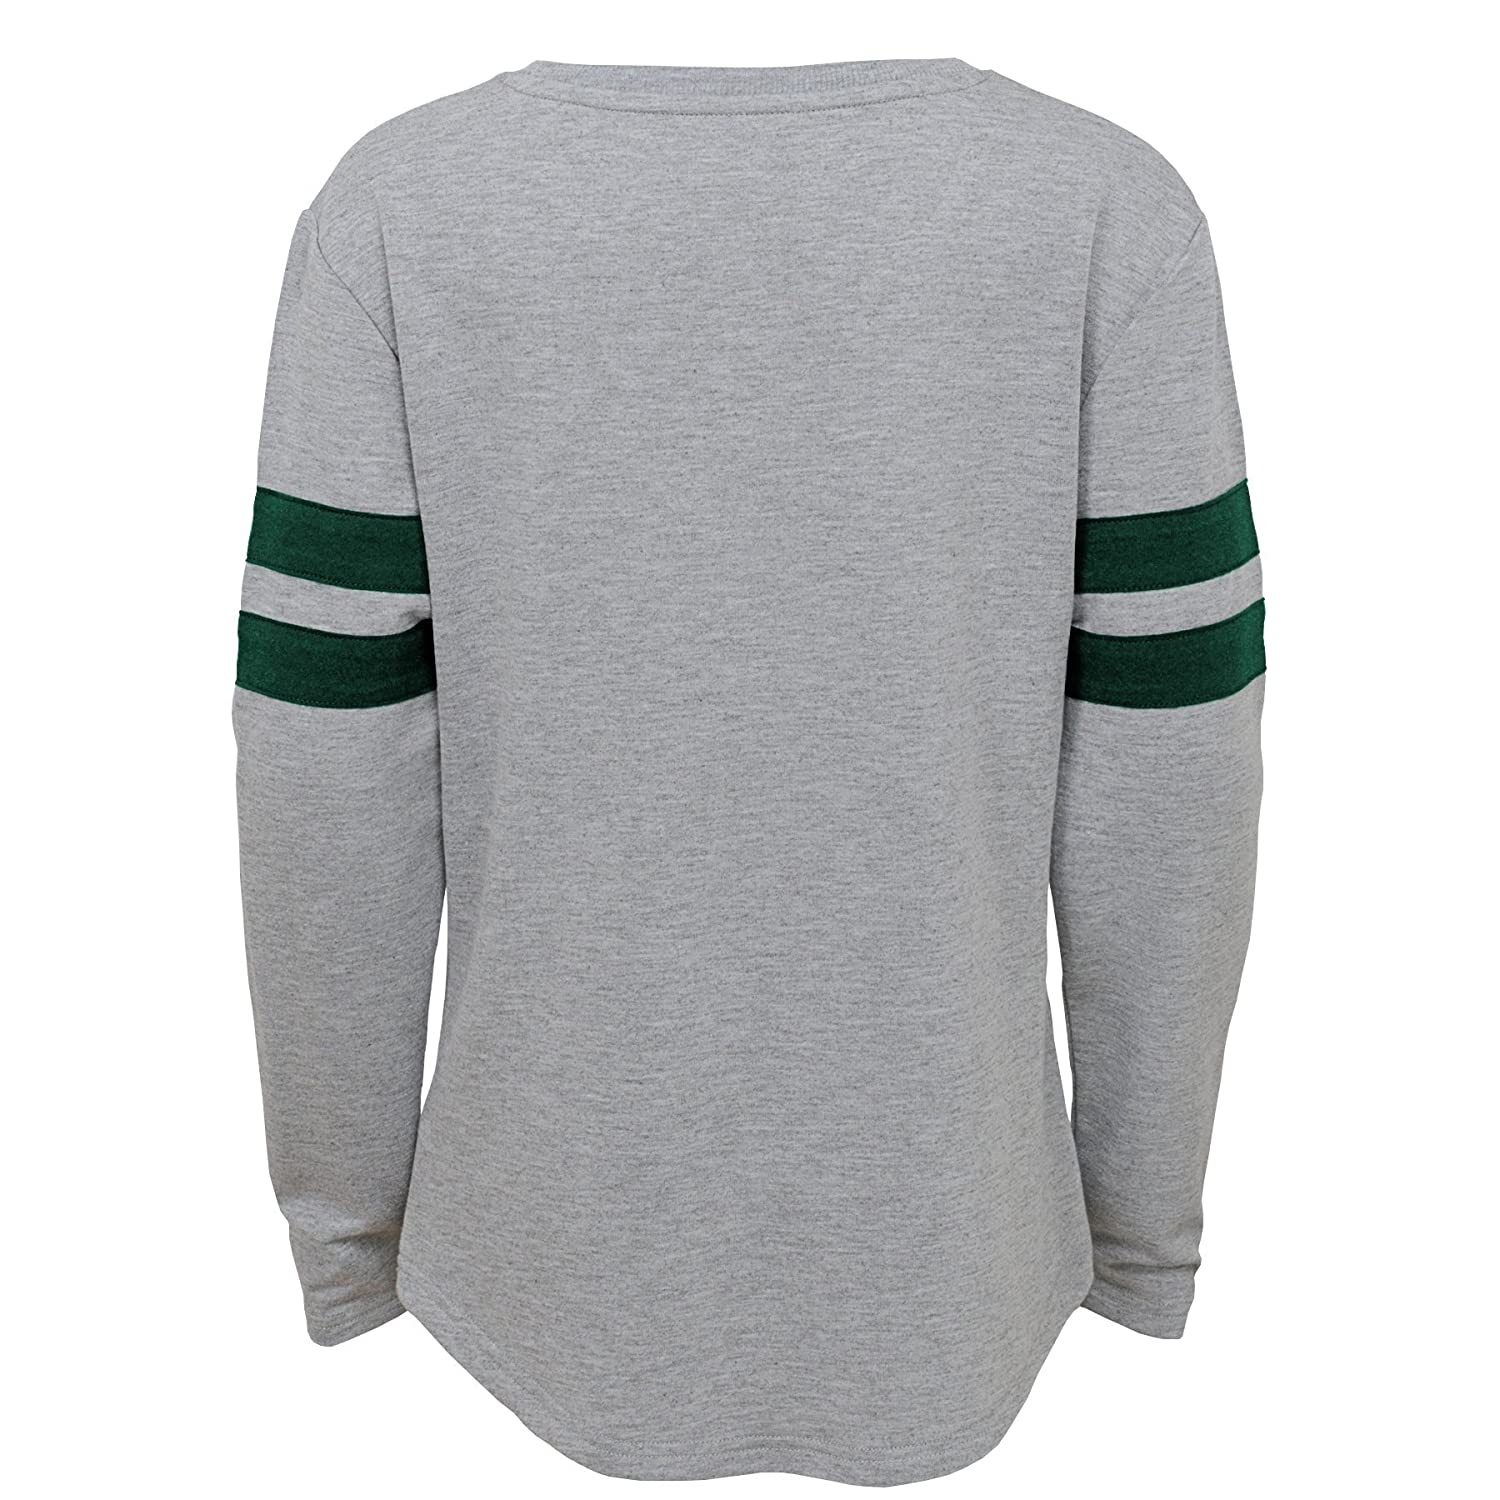 10-12 Youth Medium Outerstuff NFL NFL New York Jets Youth Girls Field Armor Long Sleeve Dolman Tee Heather Grey